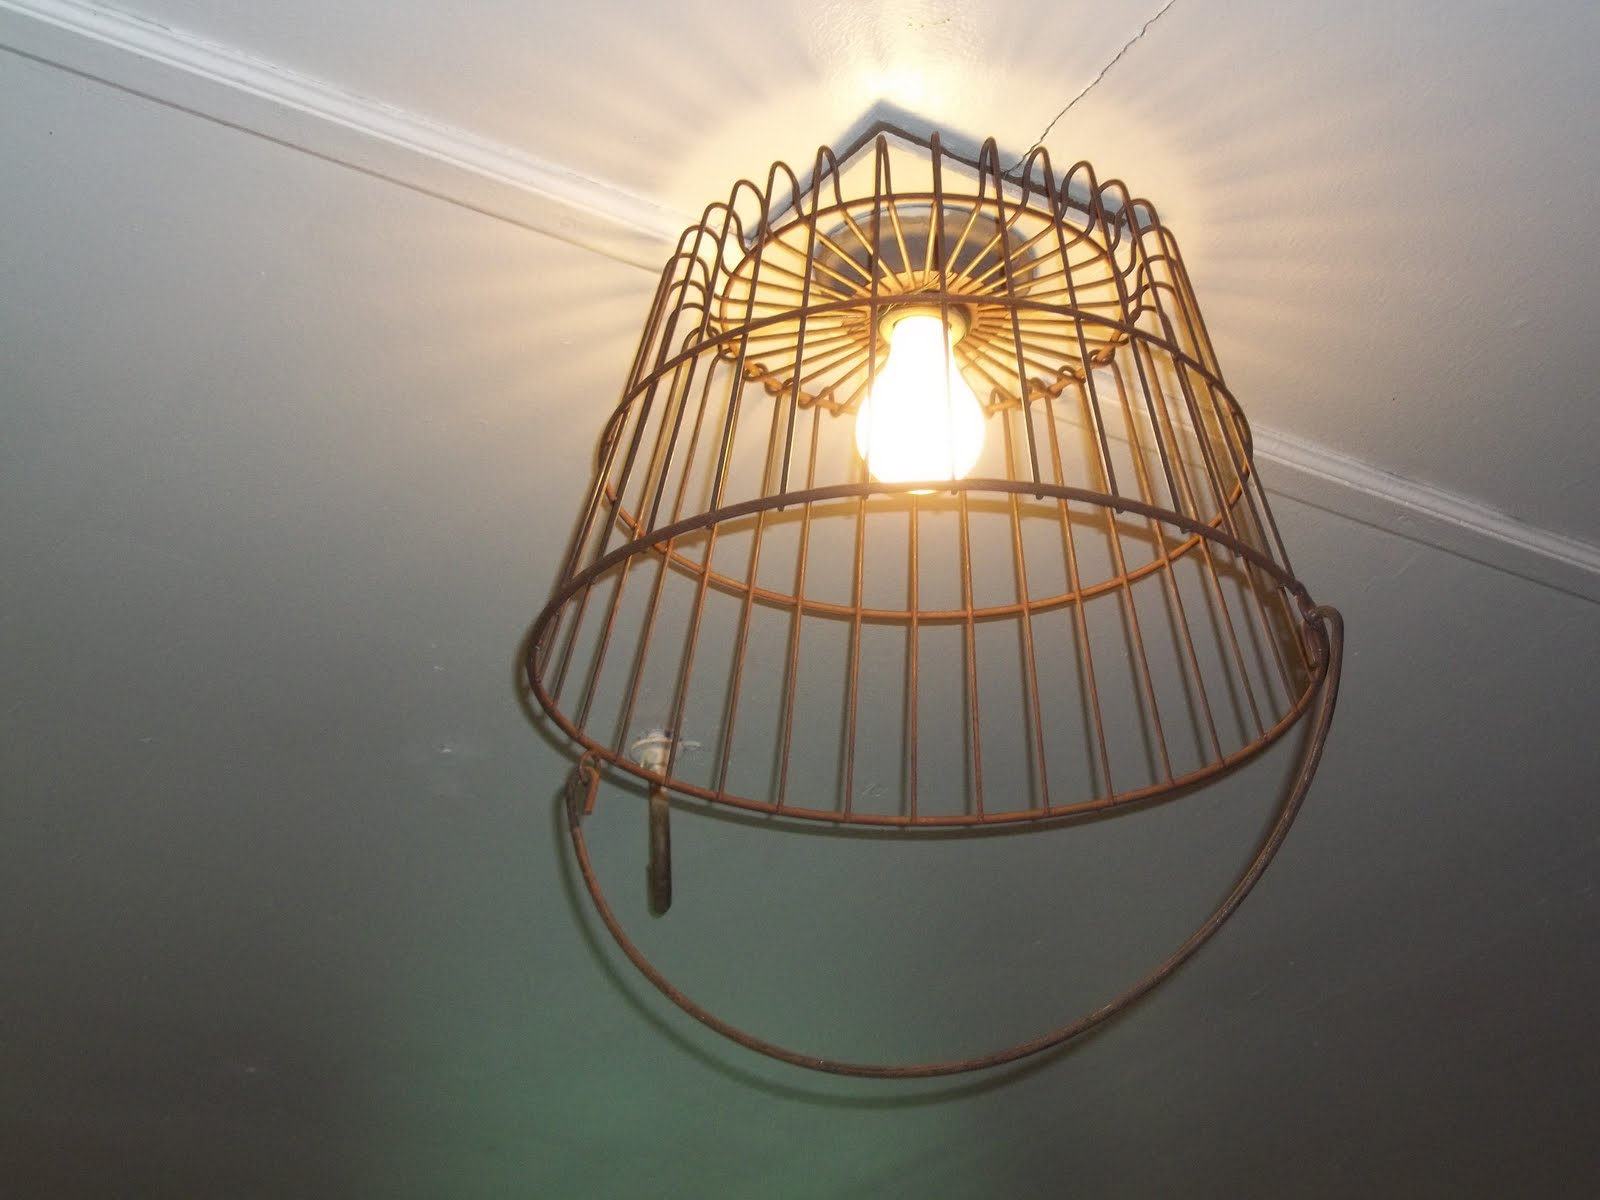 Curbside Collector: Wire Basket Light Fixture and Garage